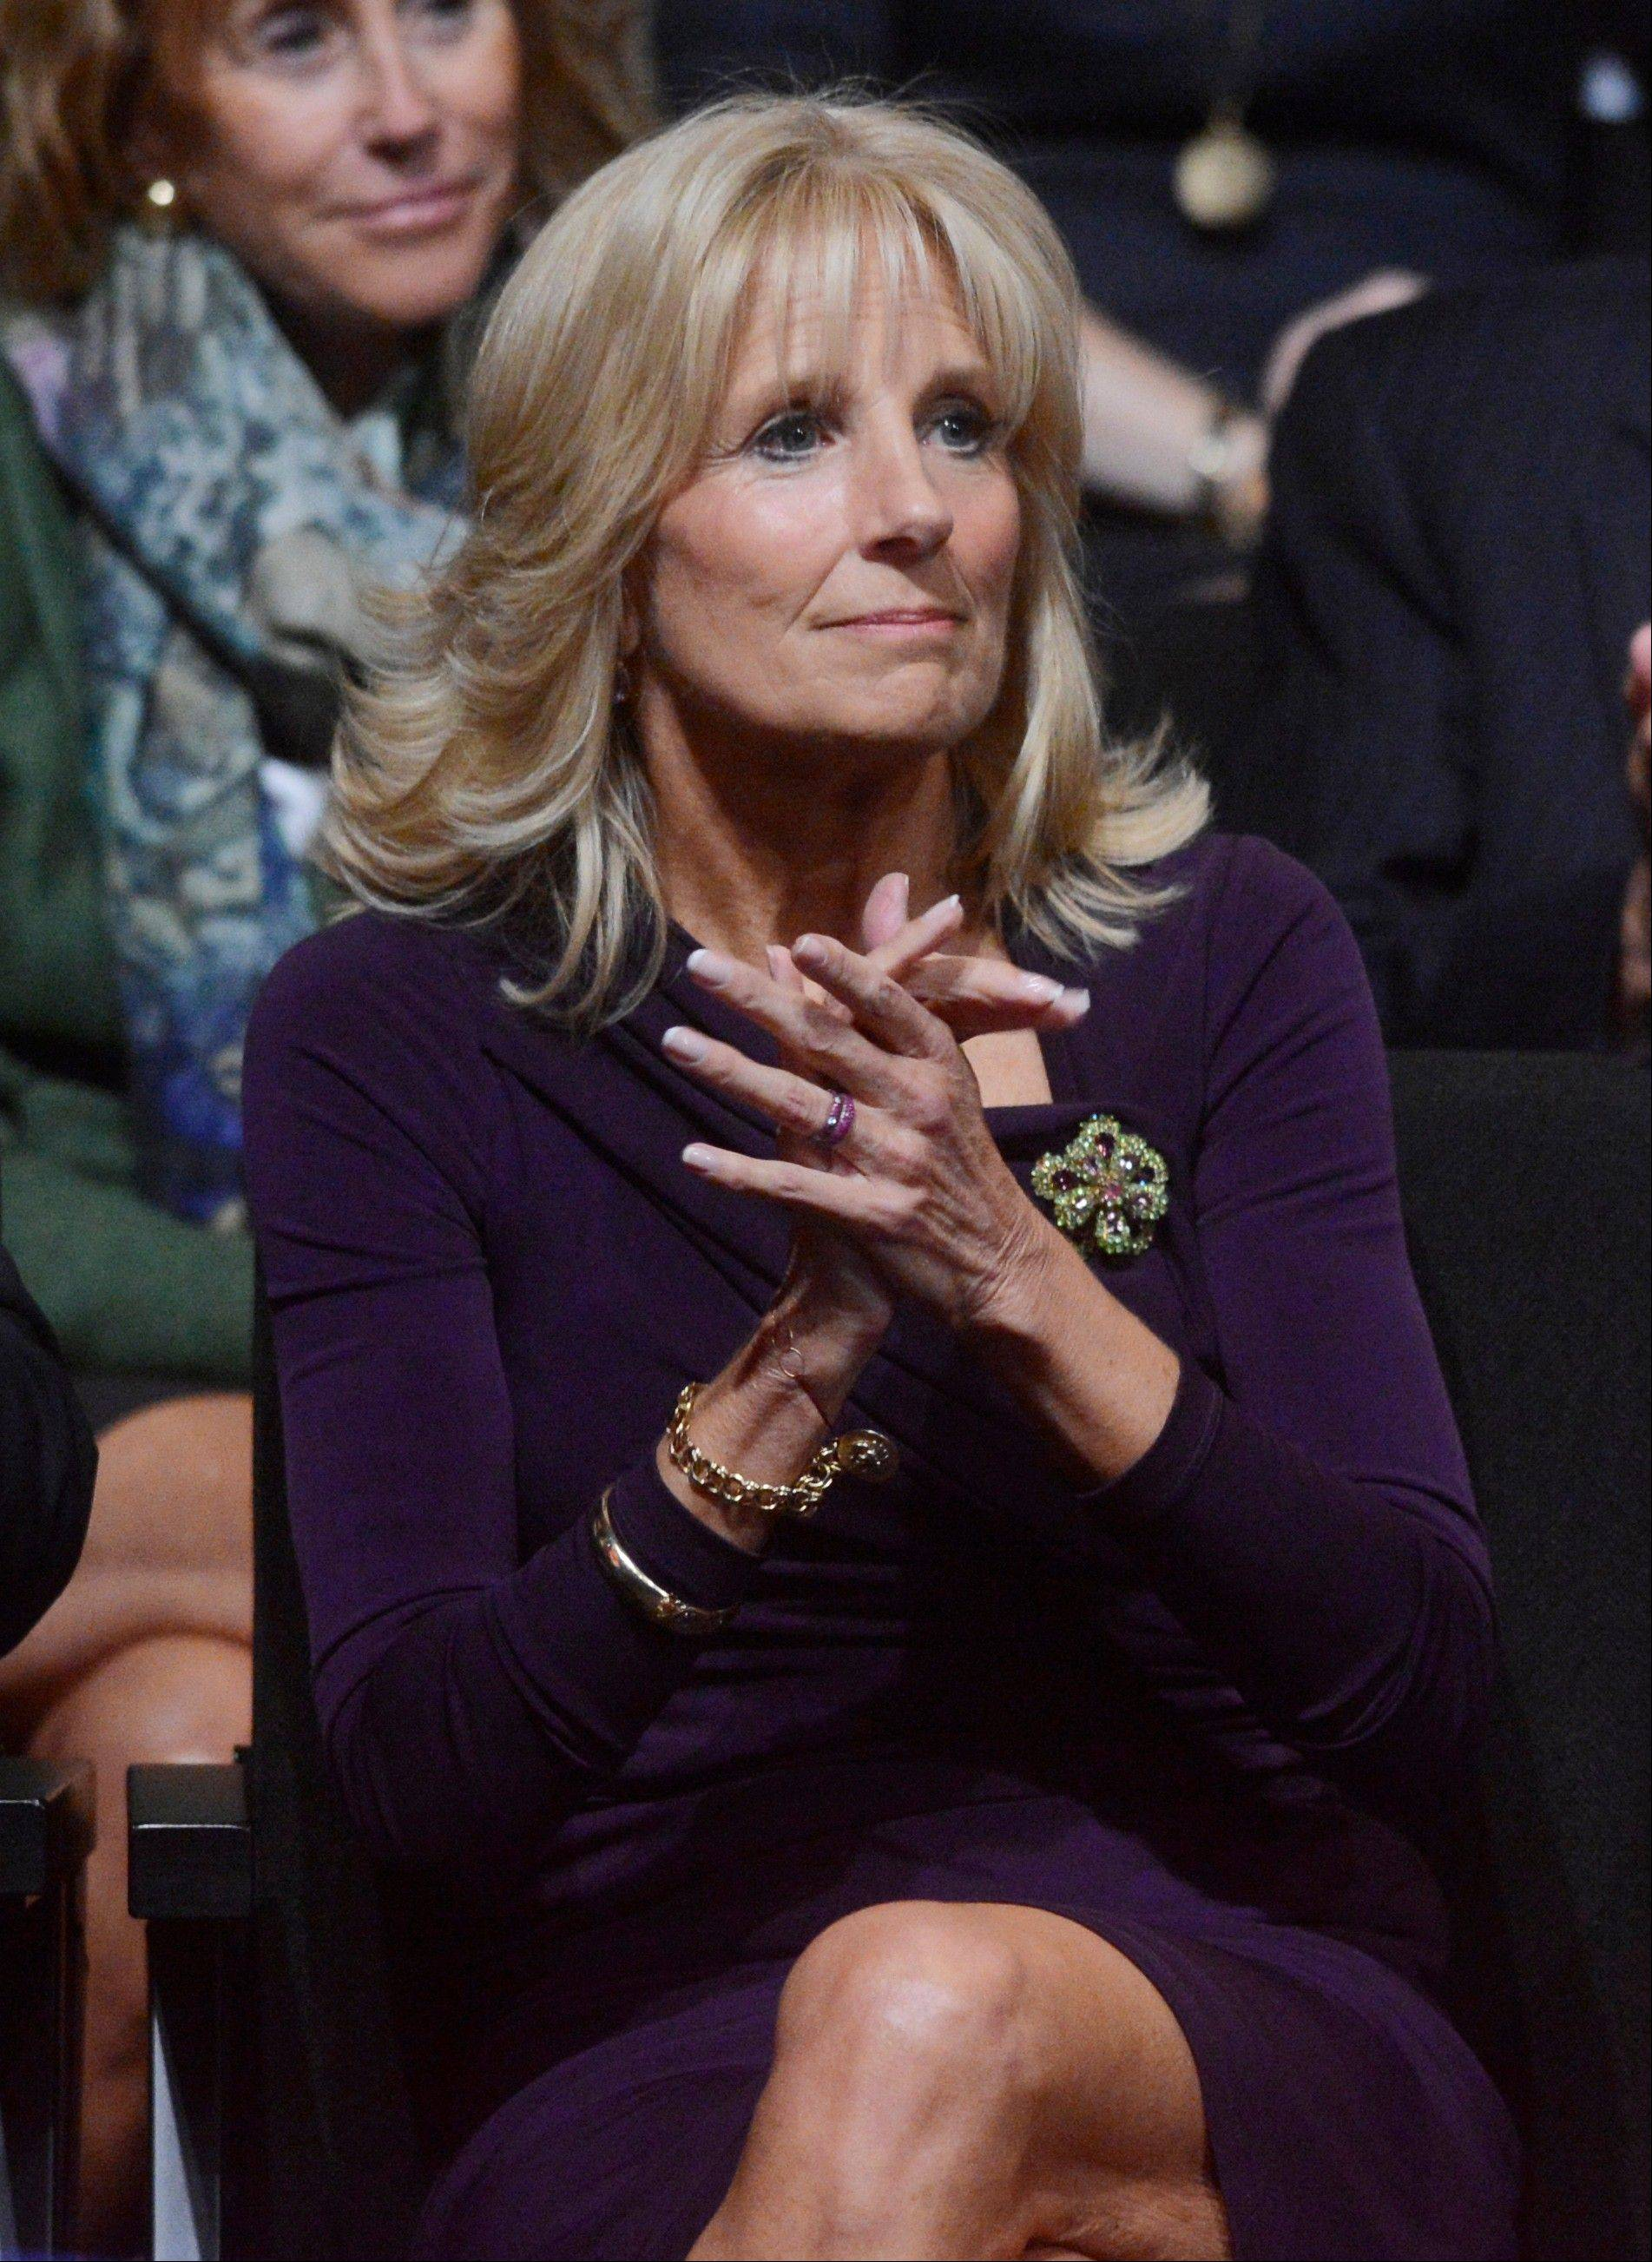 Jill Biden, wife of Vice President Joe Biden, waits for the start of the vice presidential debate at Centre College.